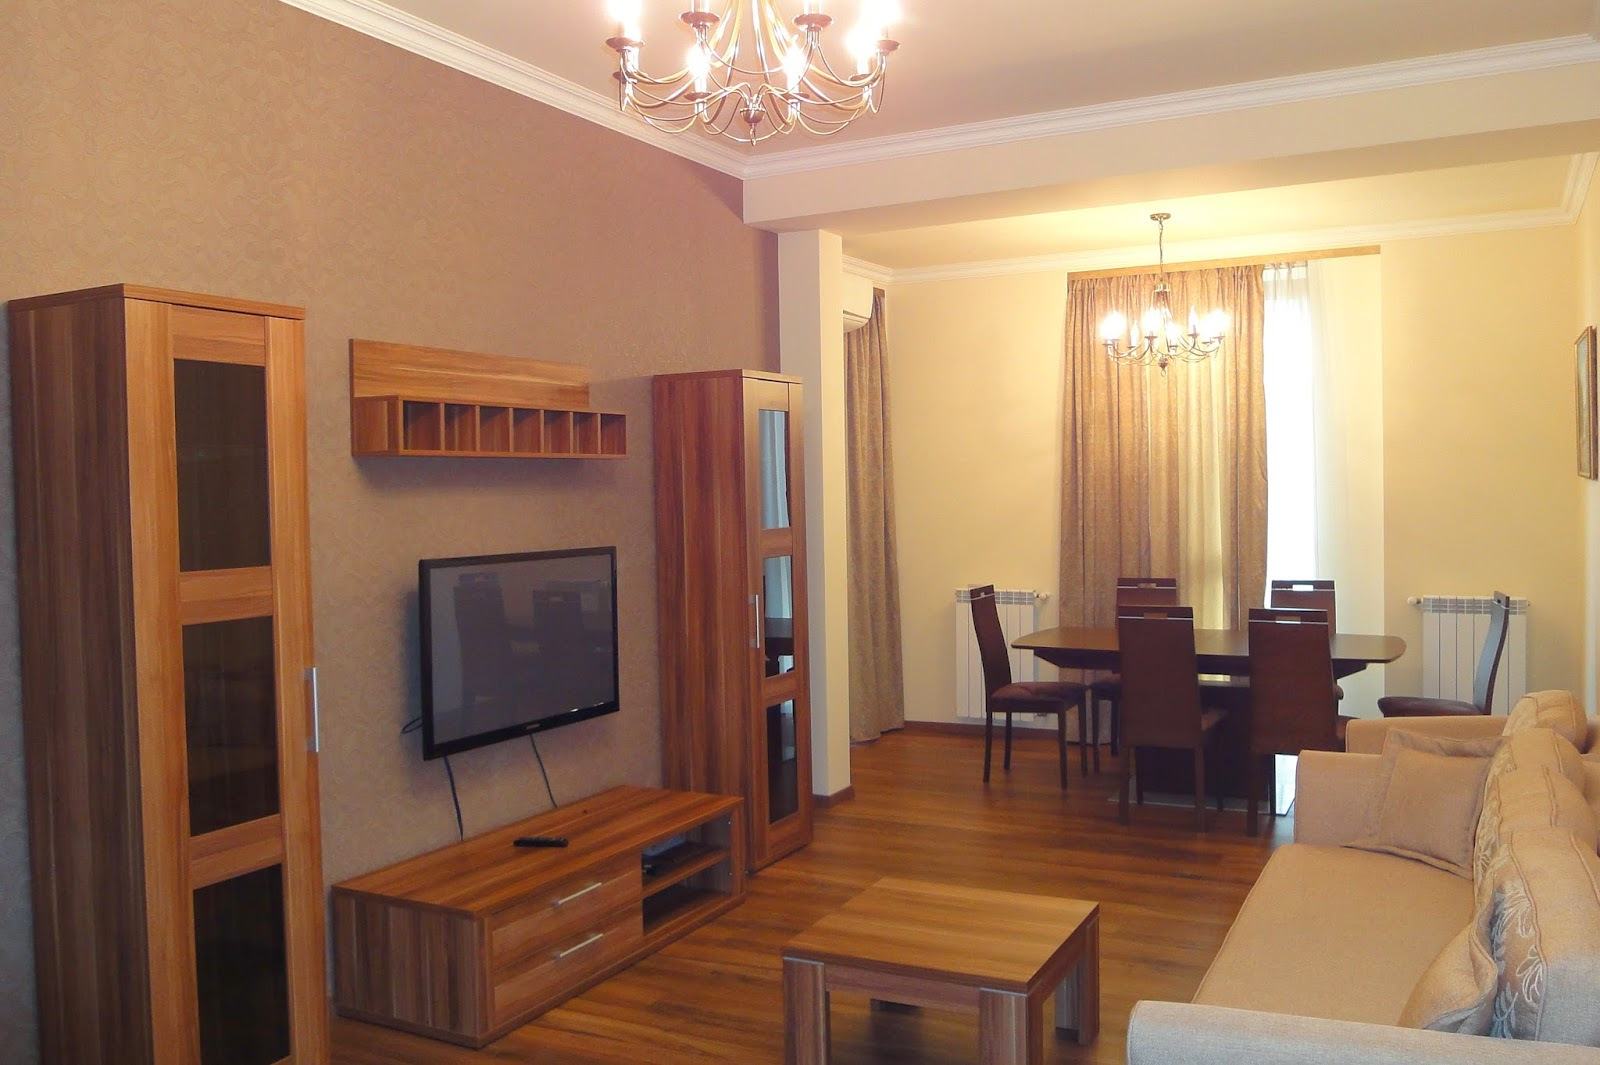 Two Bedroom Apartment for Rent in Yerevan